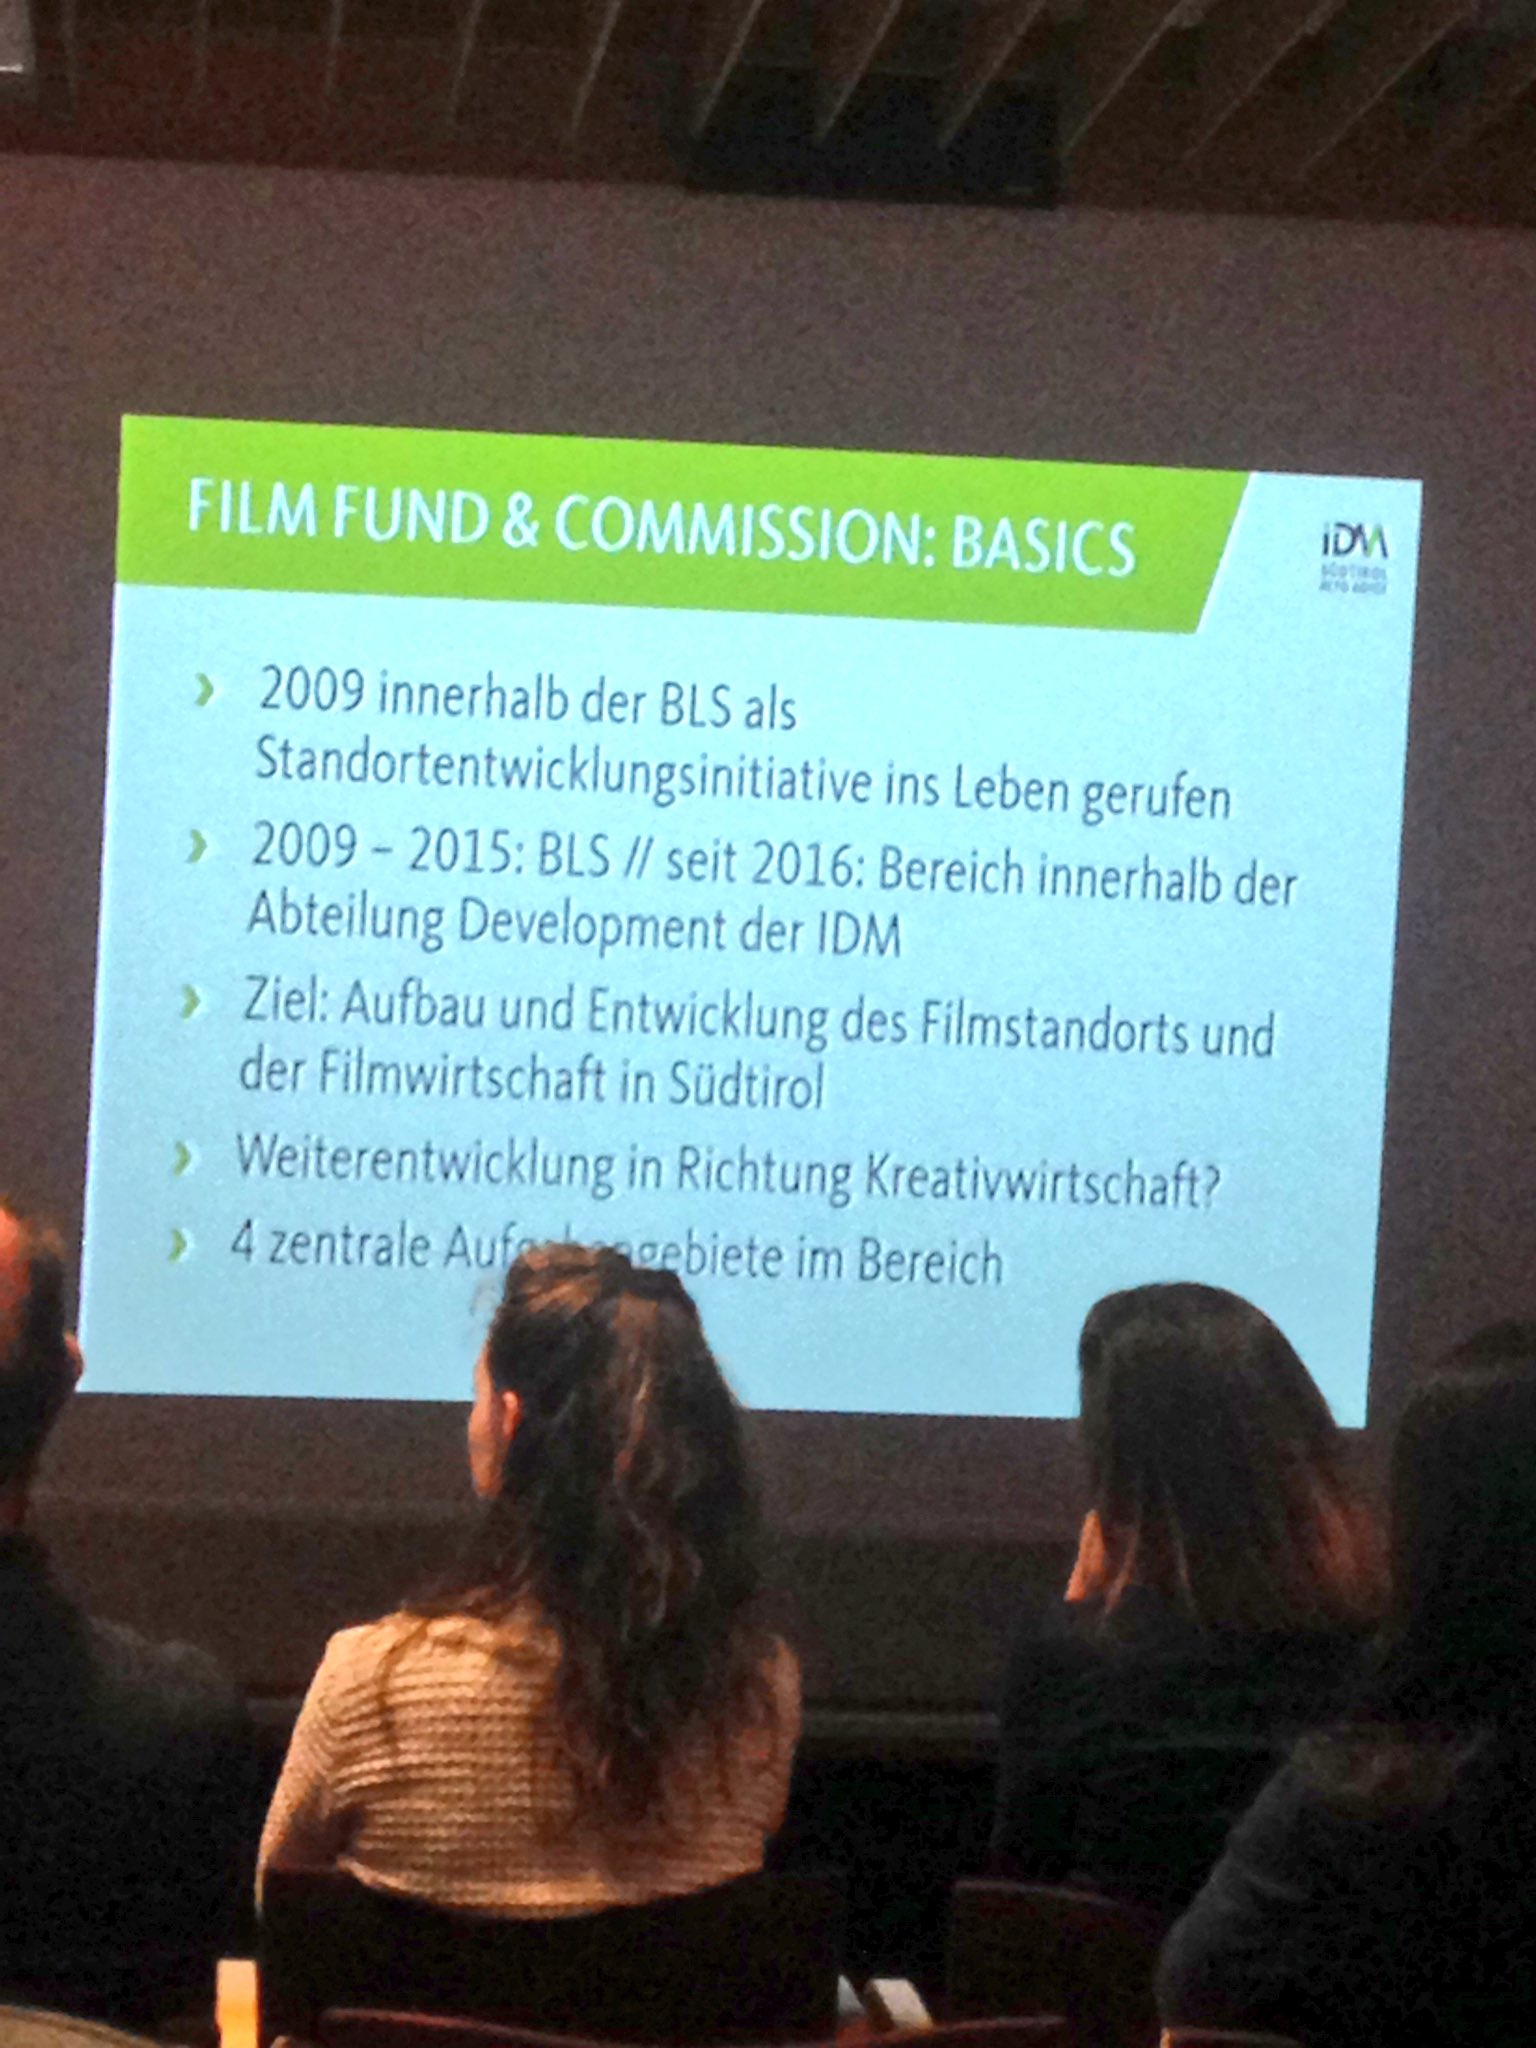 Film Fund & Commission: Basics #tmcbz https://t.co/iIolqfCIDW